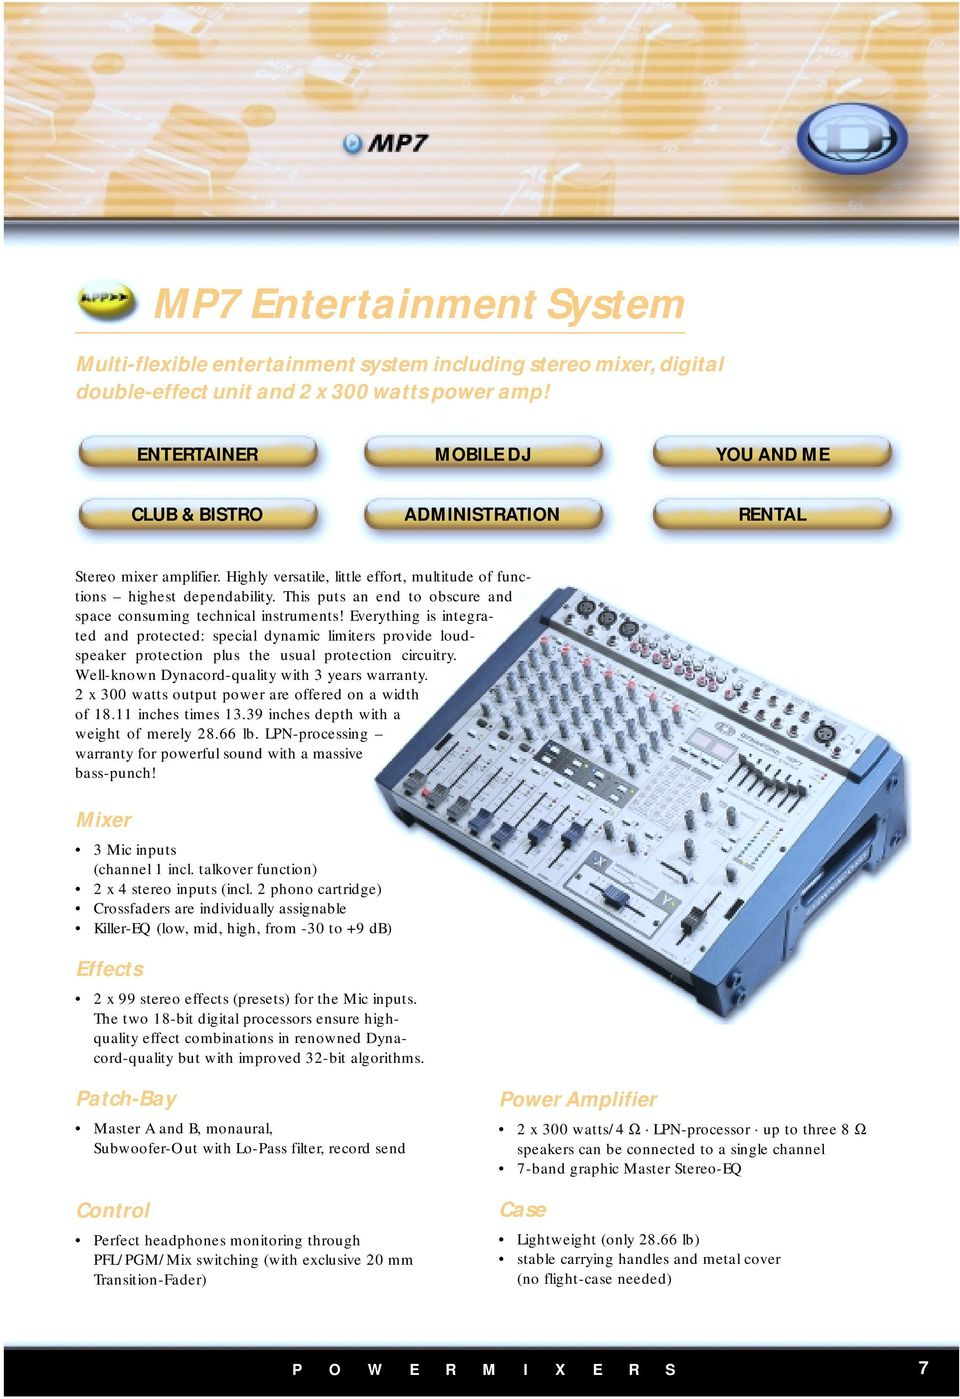 Dynacord History Pdf Loudspeaker Protection And Muting This Puts An End To Obscure Space Consuming Technical Instruments